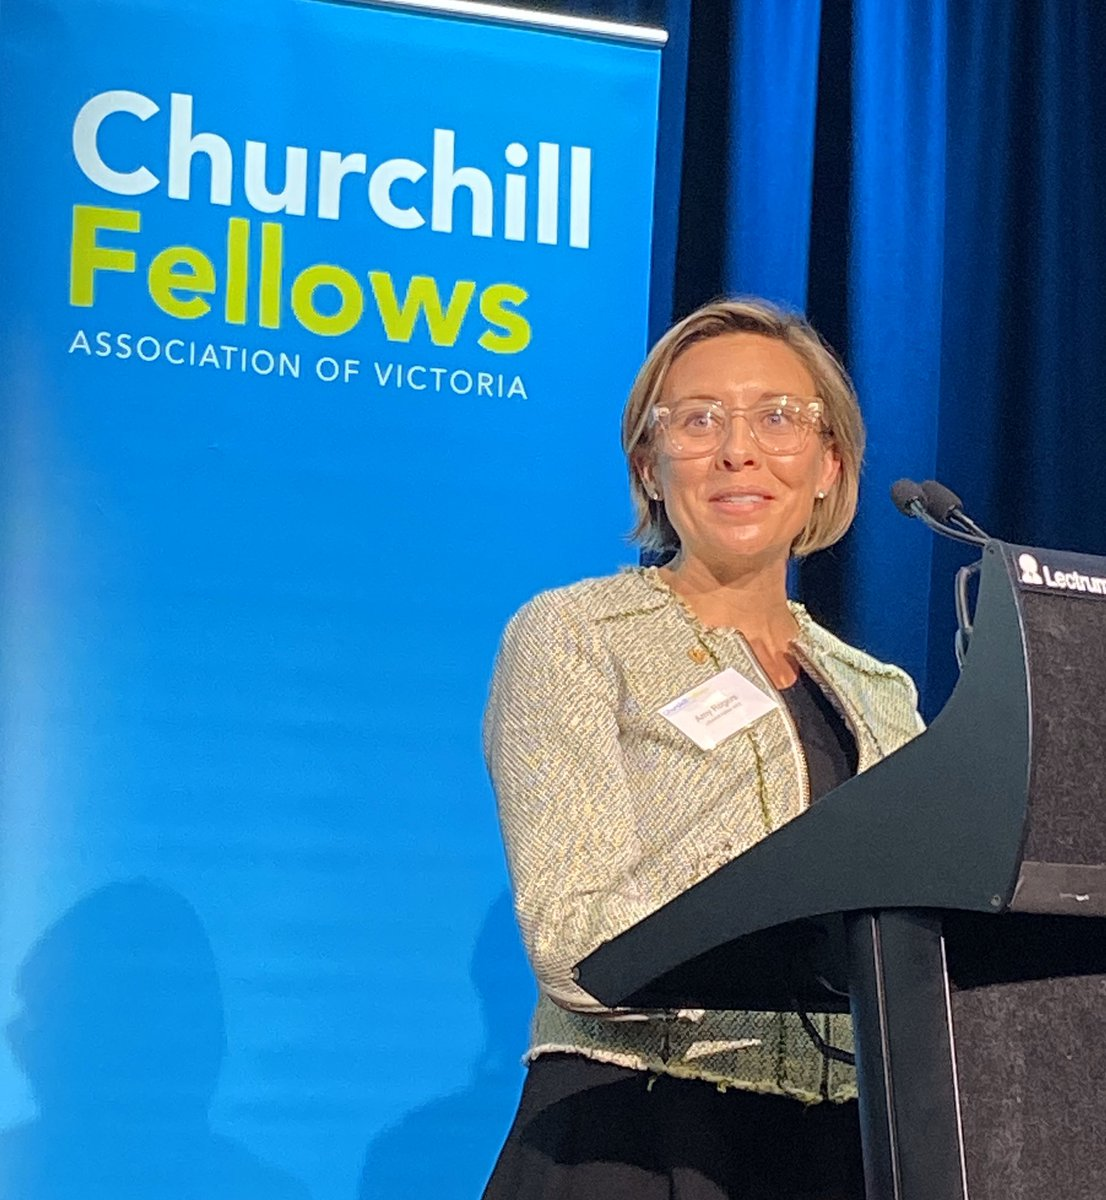 Congratulations to Amy Rogers on her 2019 @ChurchillTrust Fellowship investigating the effectiveness of gender pay equity legislation & regulatory frameworks: UK, Sweden, Finland, Iceland, NZ We're the highest education ranking for women in Aus but 62/144 OECD for gender pay gap.